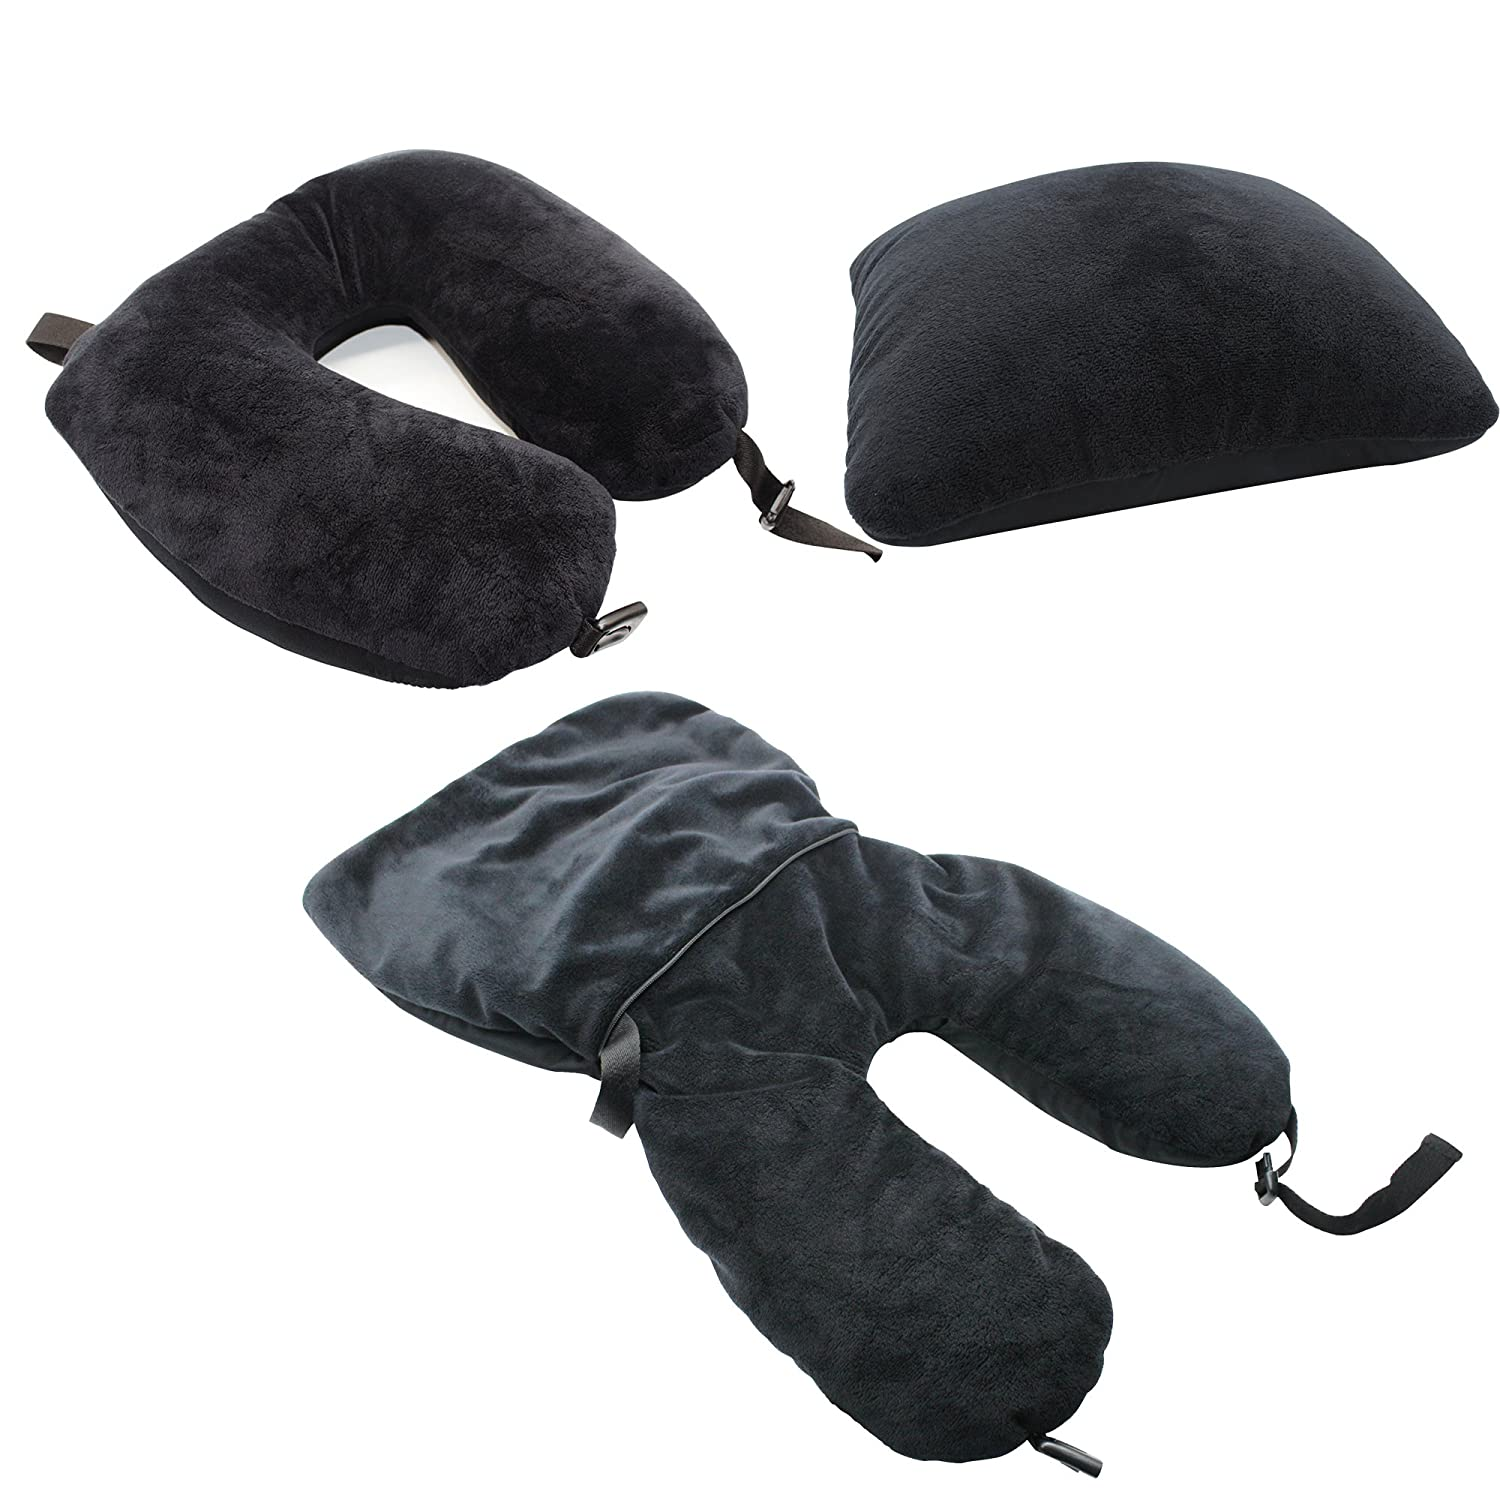 Smartrip Travel Pillow, Multi-Purpose